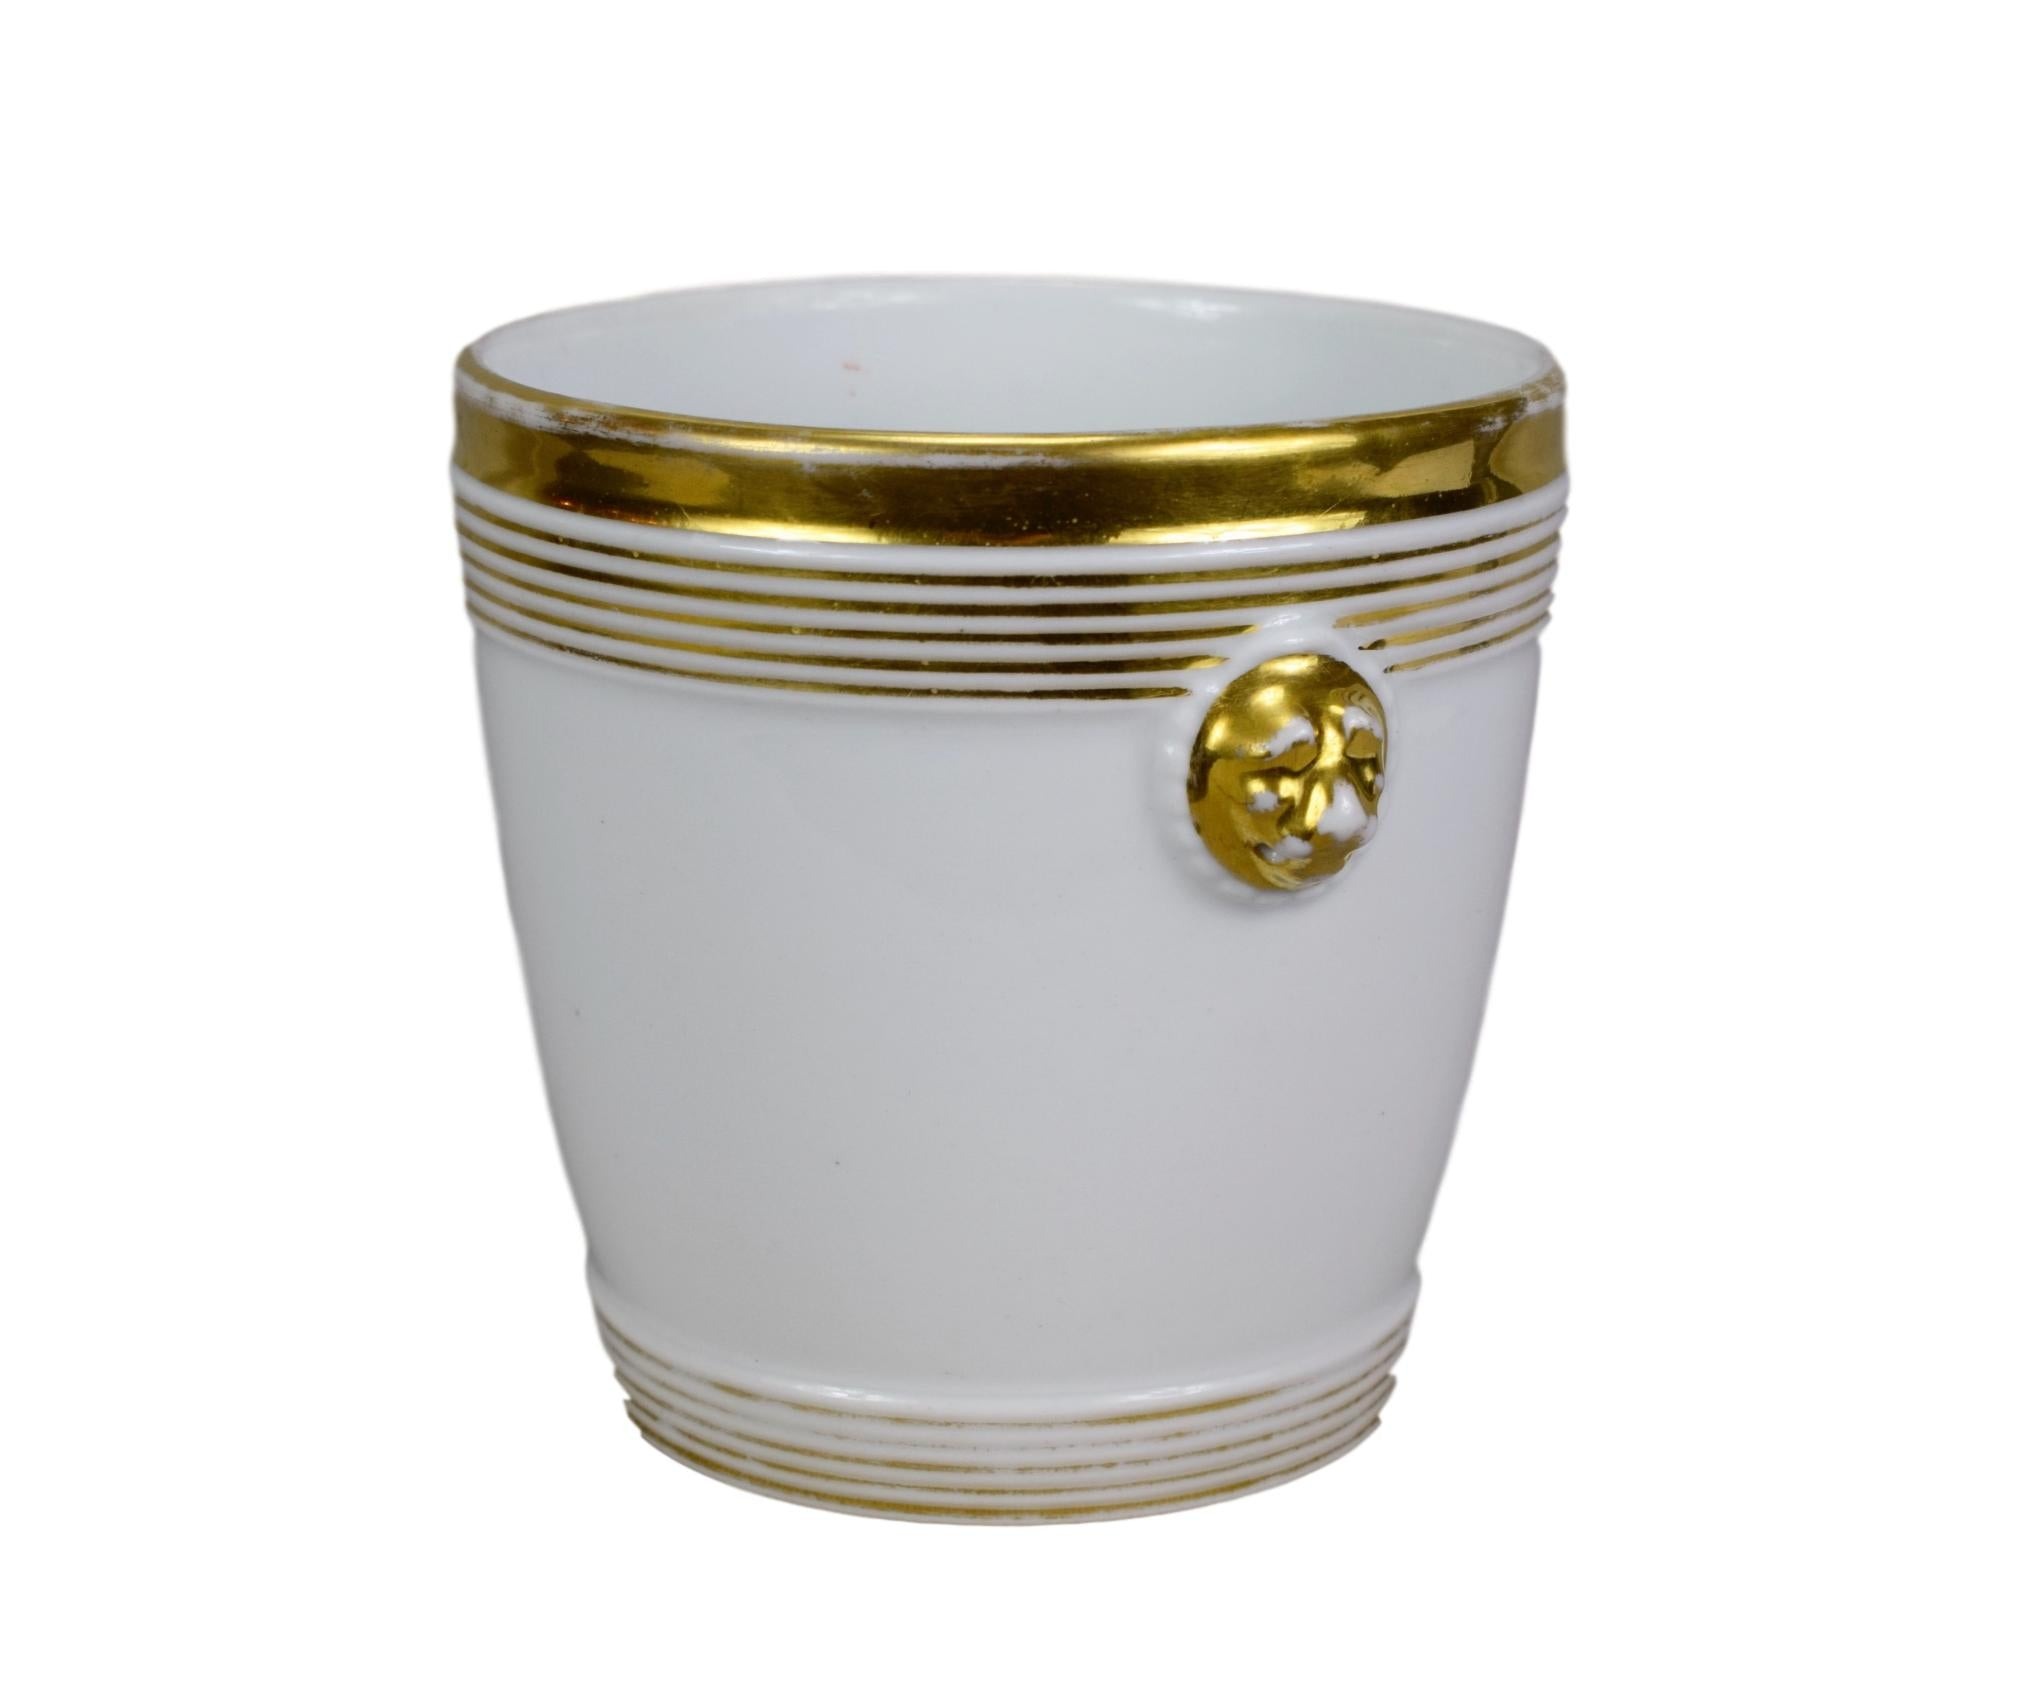 19th.C Old Paris Porcelain Cache Pot - Stunning French Gold & White China Planter - Antique Classical Cache Pot